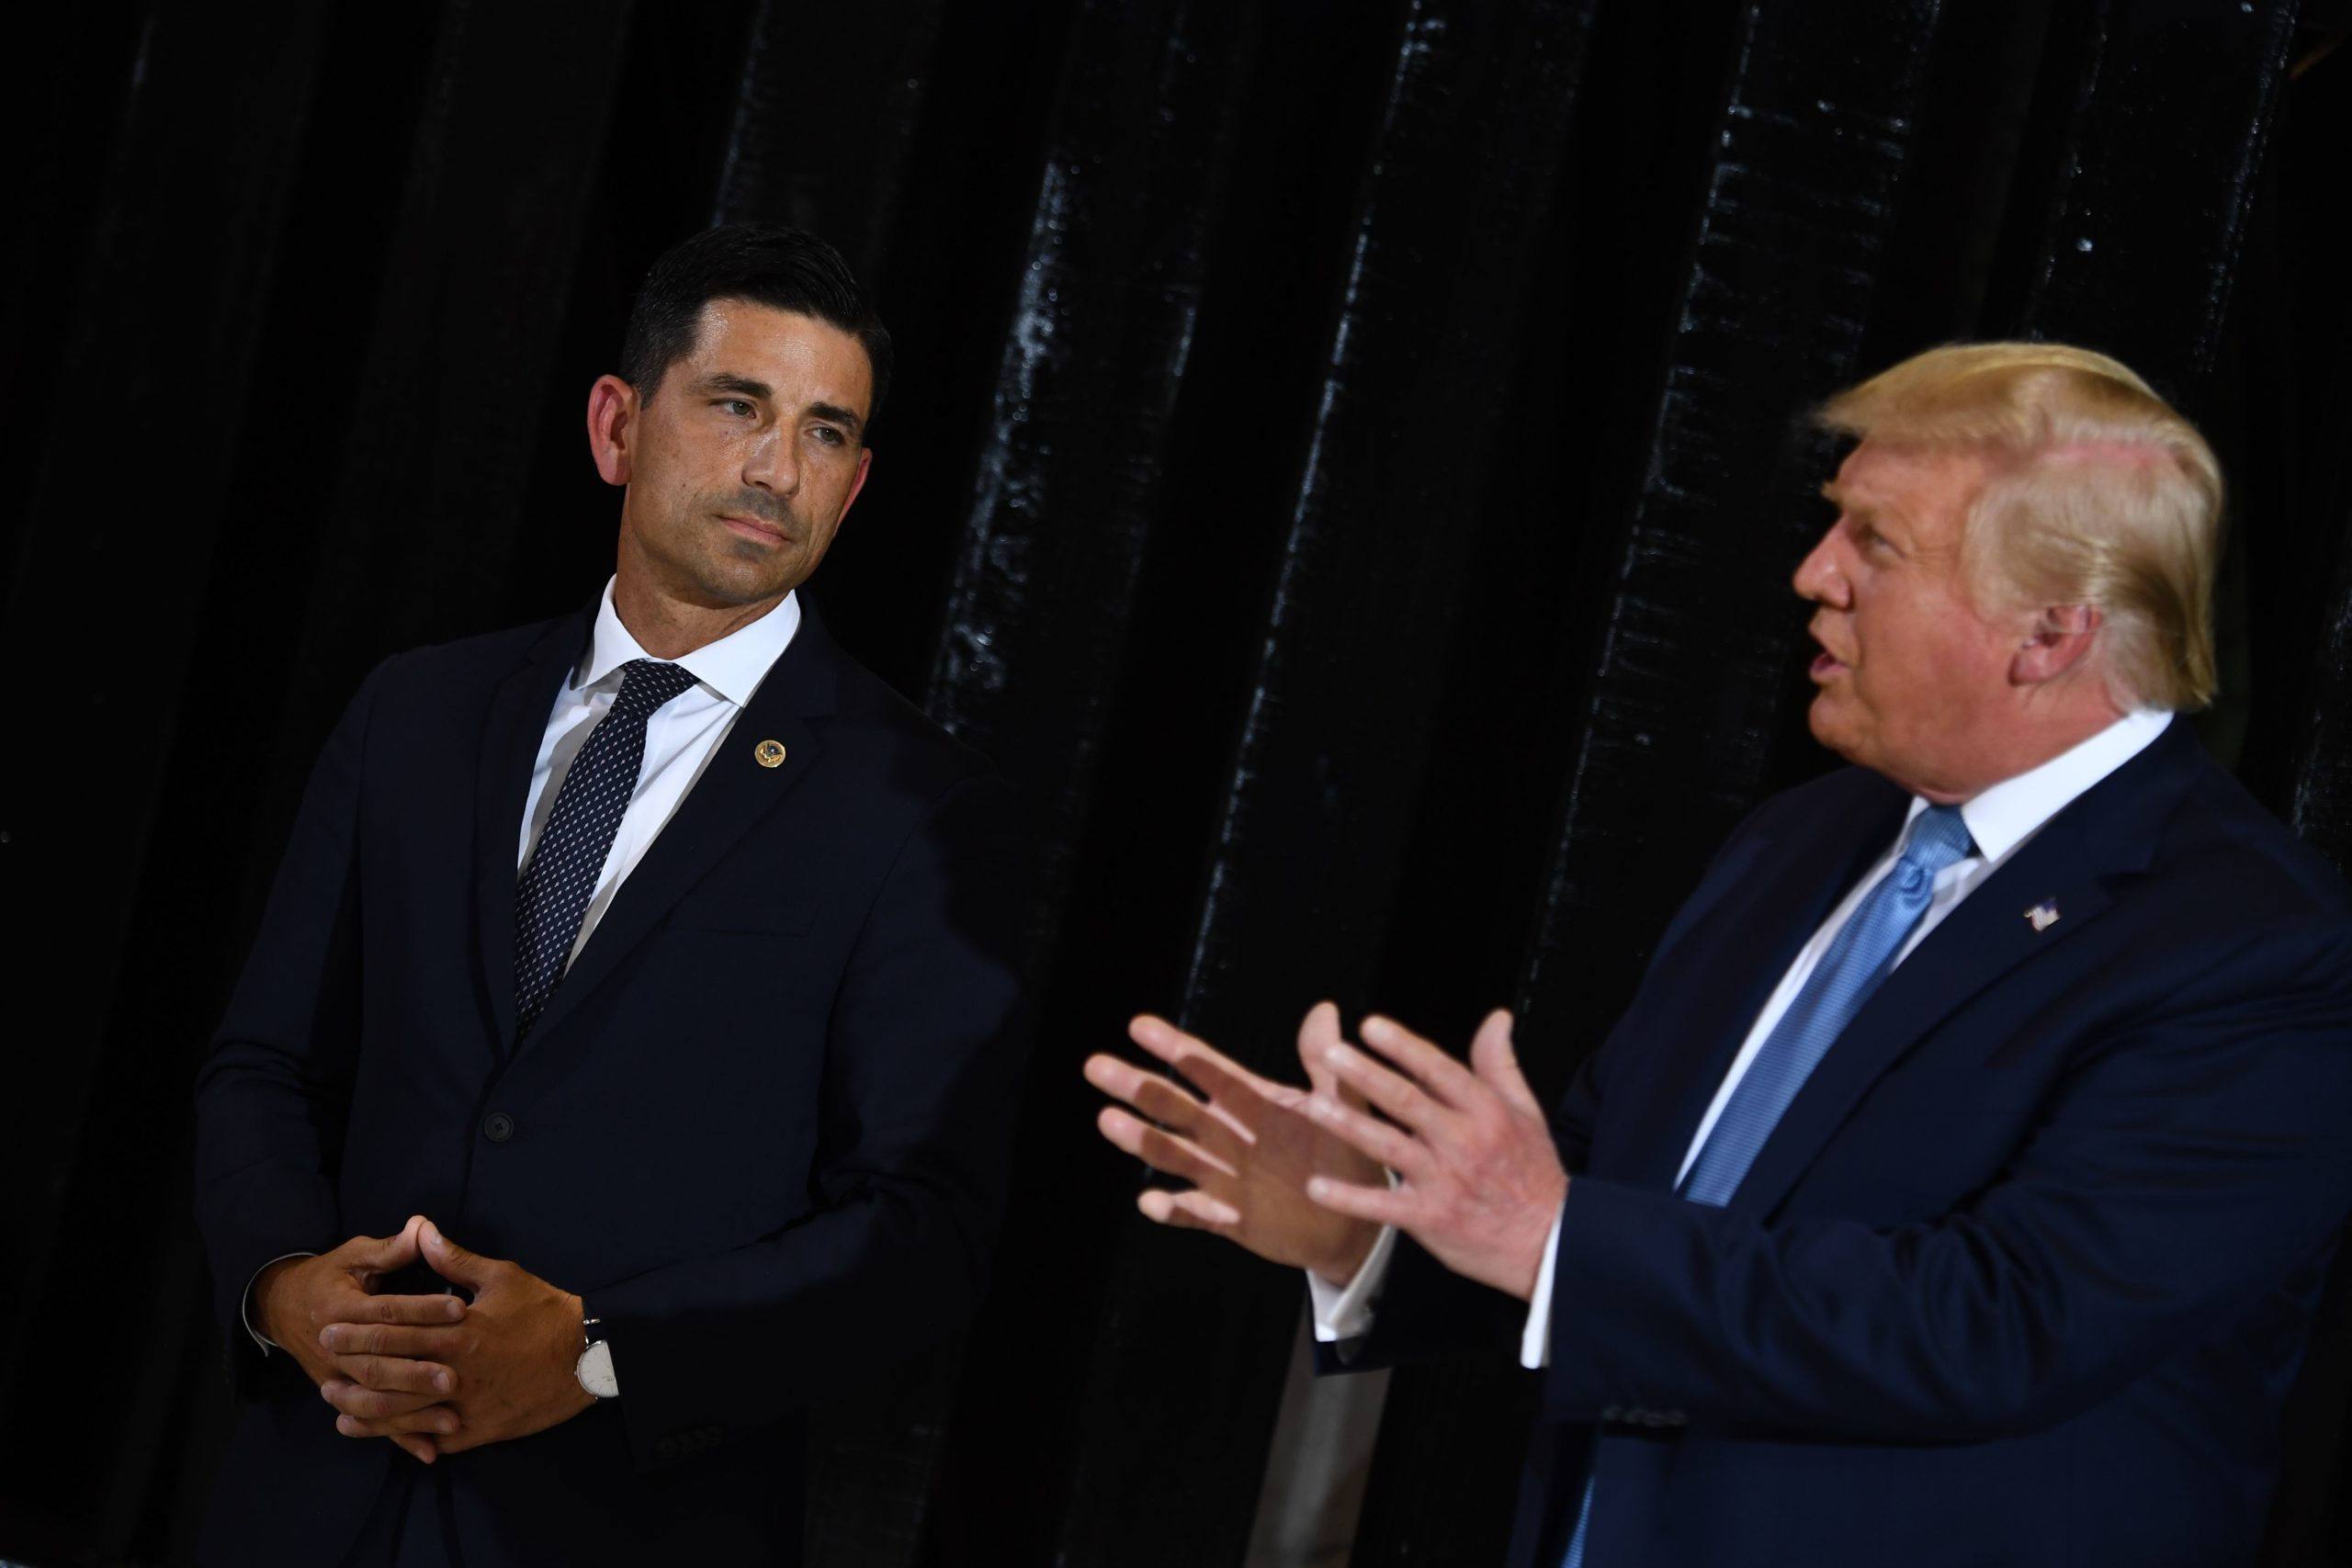 US President Donald Trump delivers remarks on immigration and border security to members of the border patrol as Acting secretary of Homeland Security, Chad Wolf (L) looks on at the international airport in Yuma, Arizona on August 18, 2020. (Photo by BRENDAN SMIALOWSKI/AFP via Getty Images)